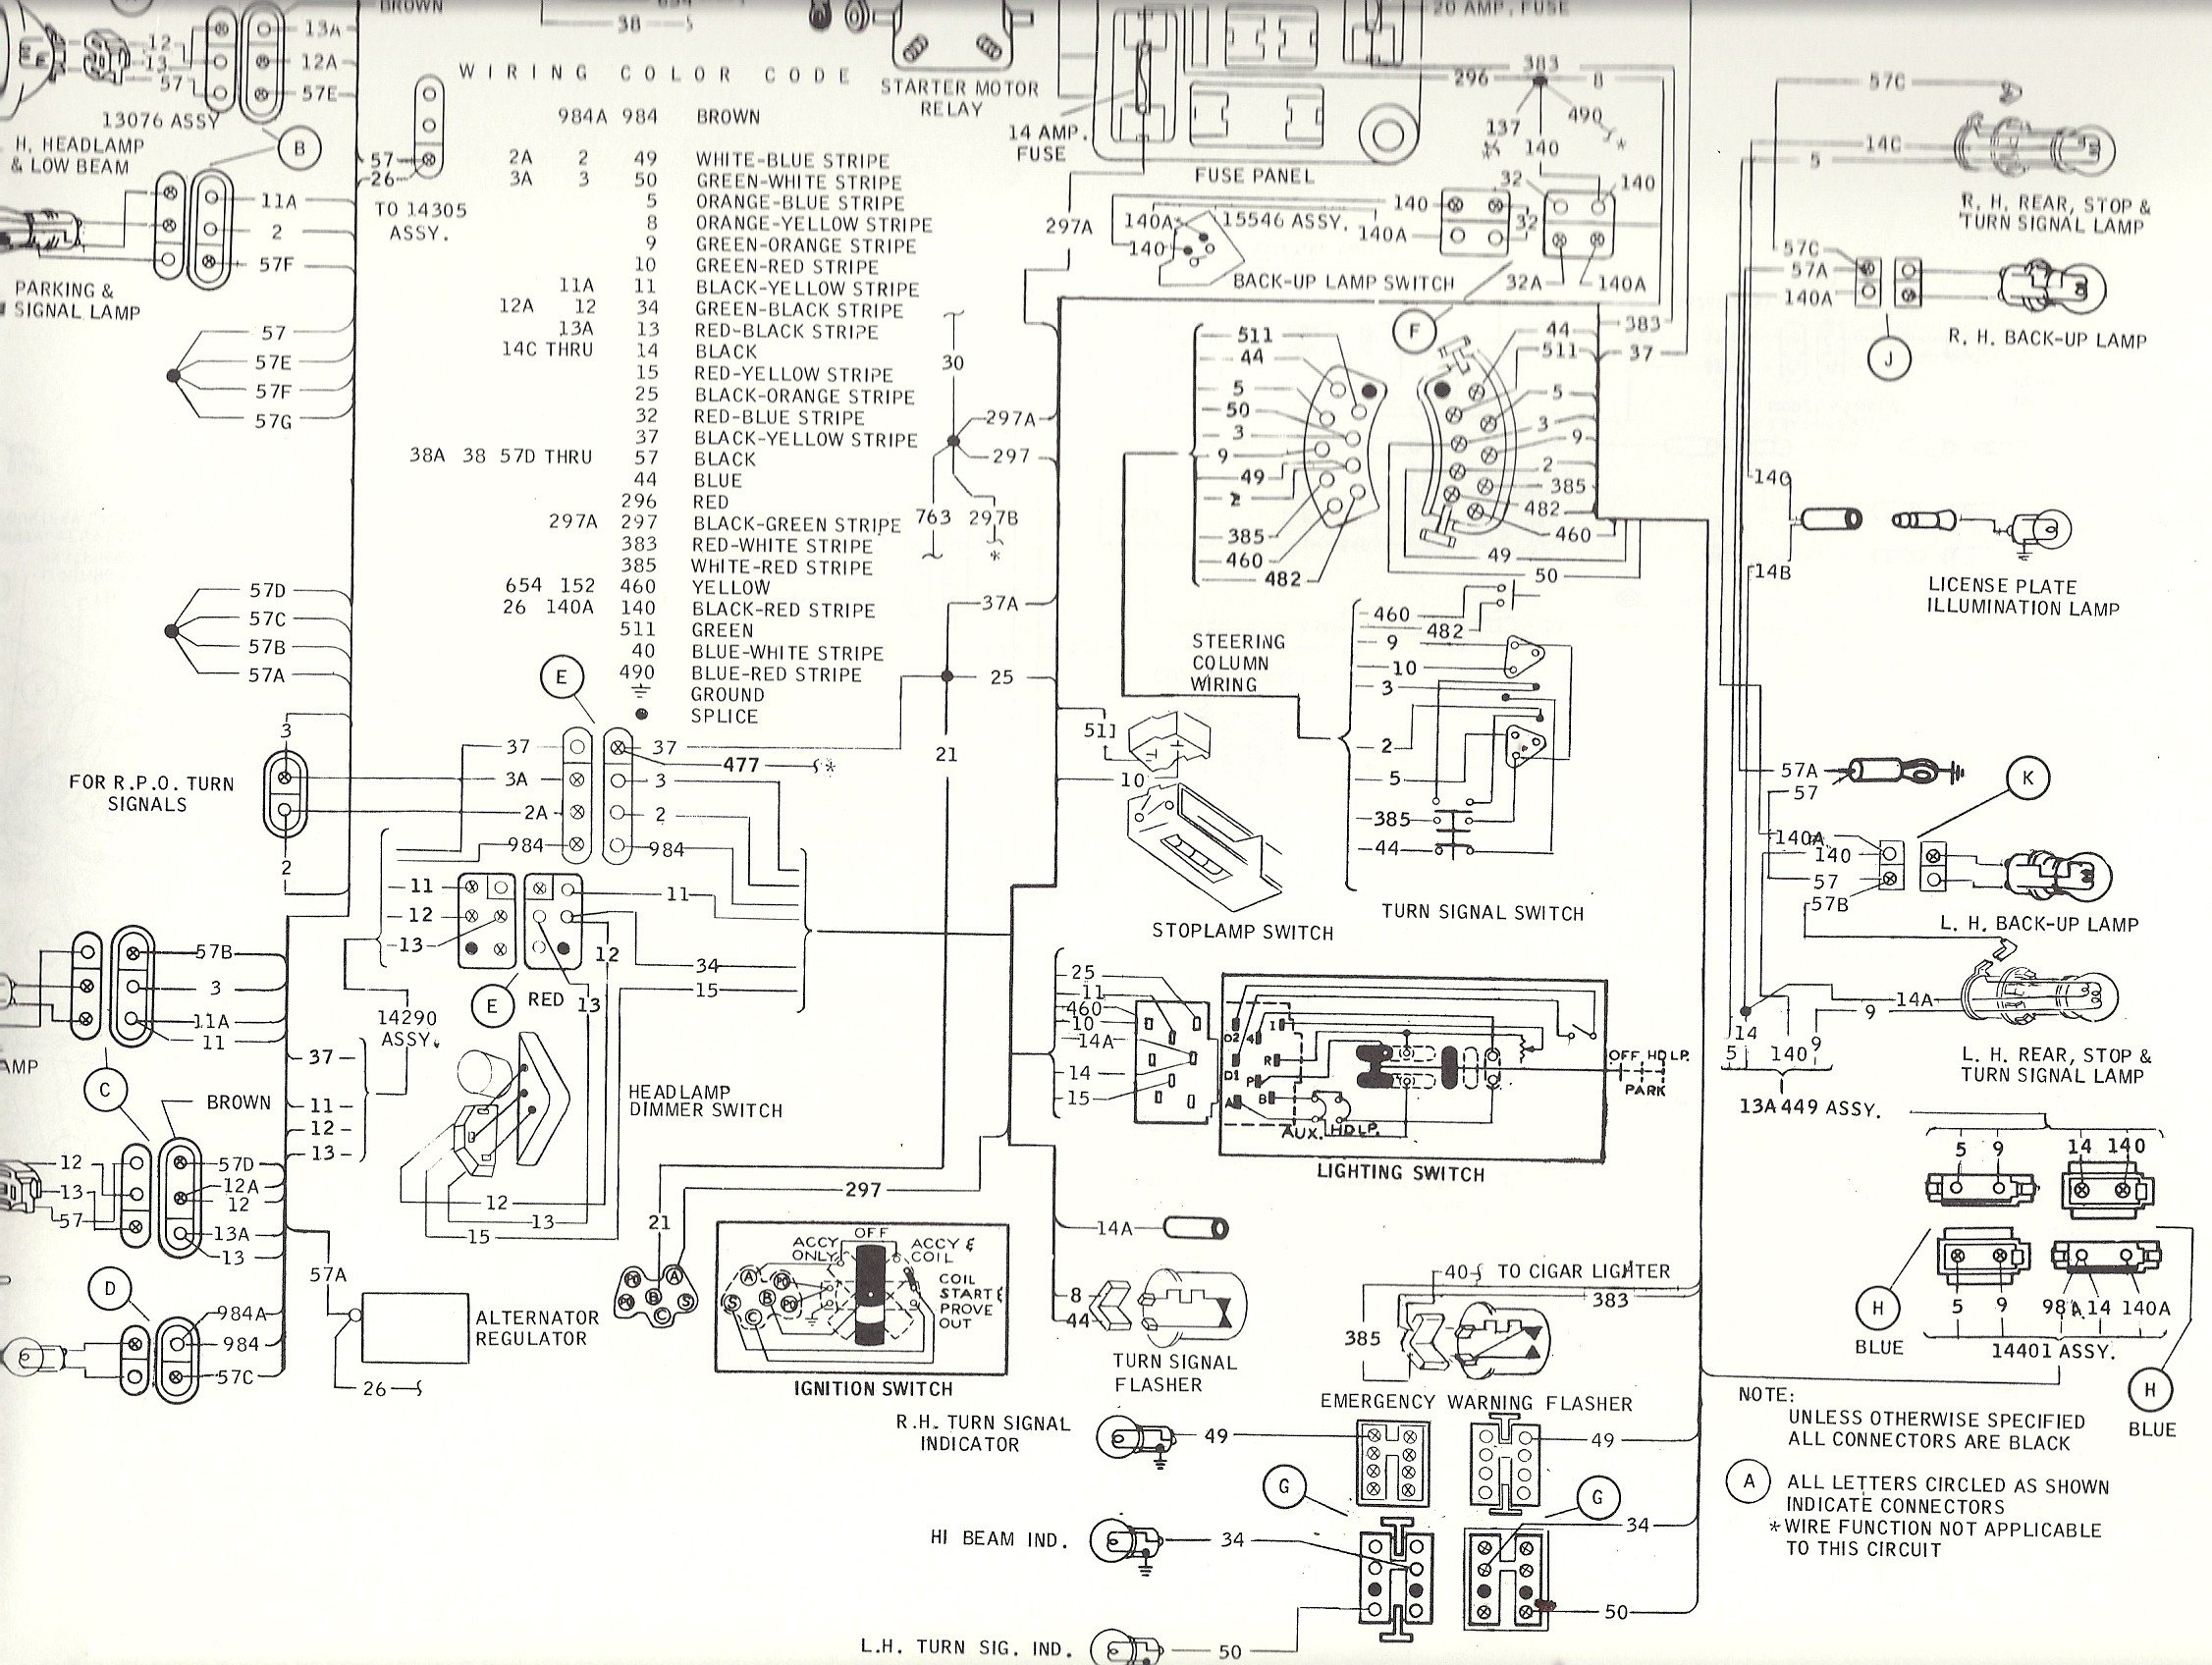 68 Mustang Turn Signal Switch Wiring Diagram - Wiring ... on